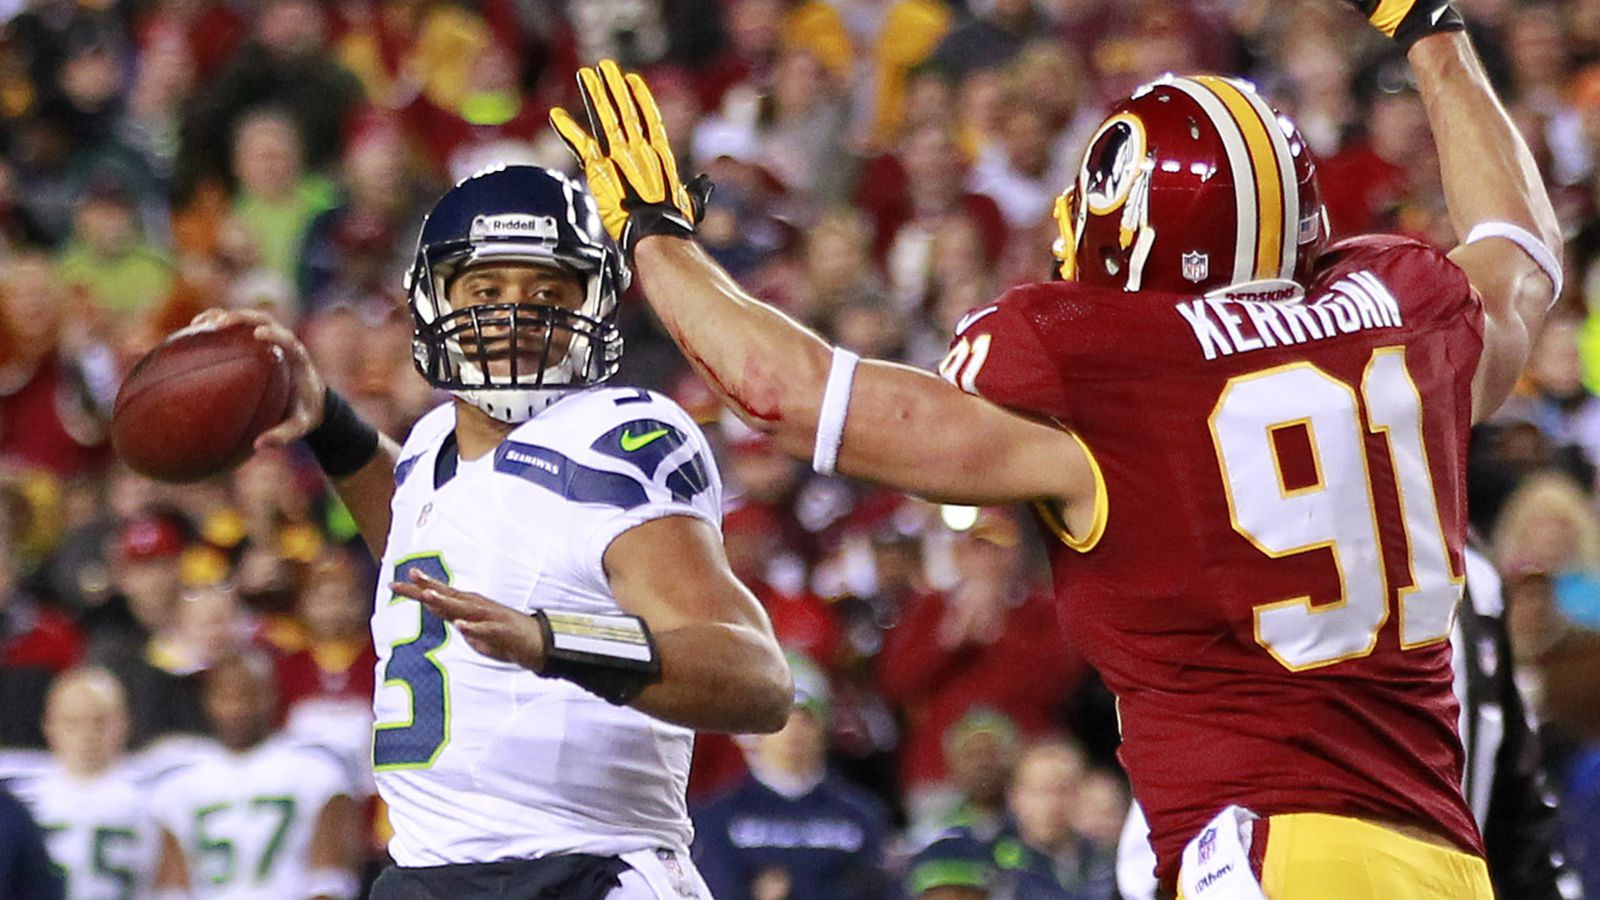 Seahawks vs. Redskins 2013, NFL Playoffs: Seattle advances ...Raiders Vs Falcons